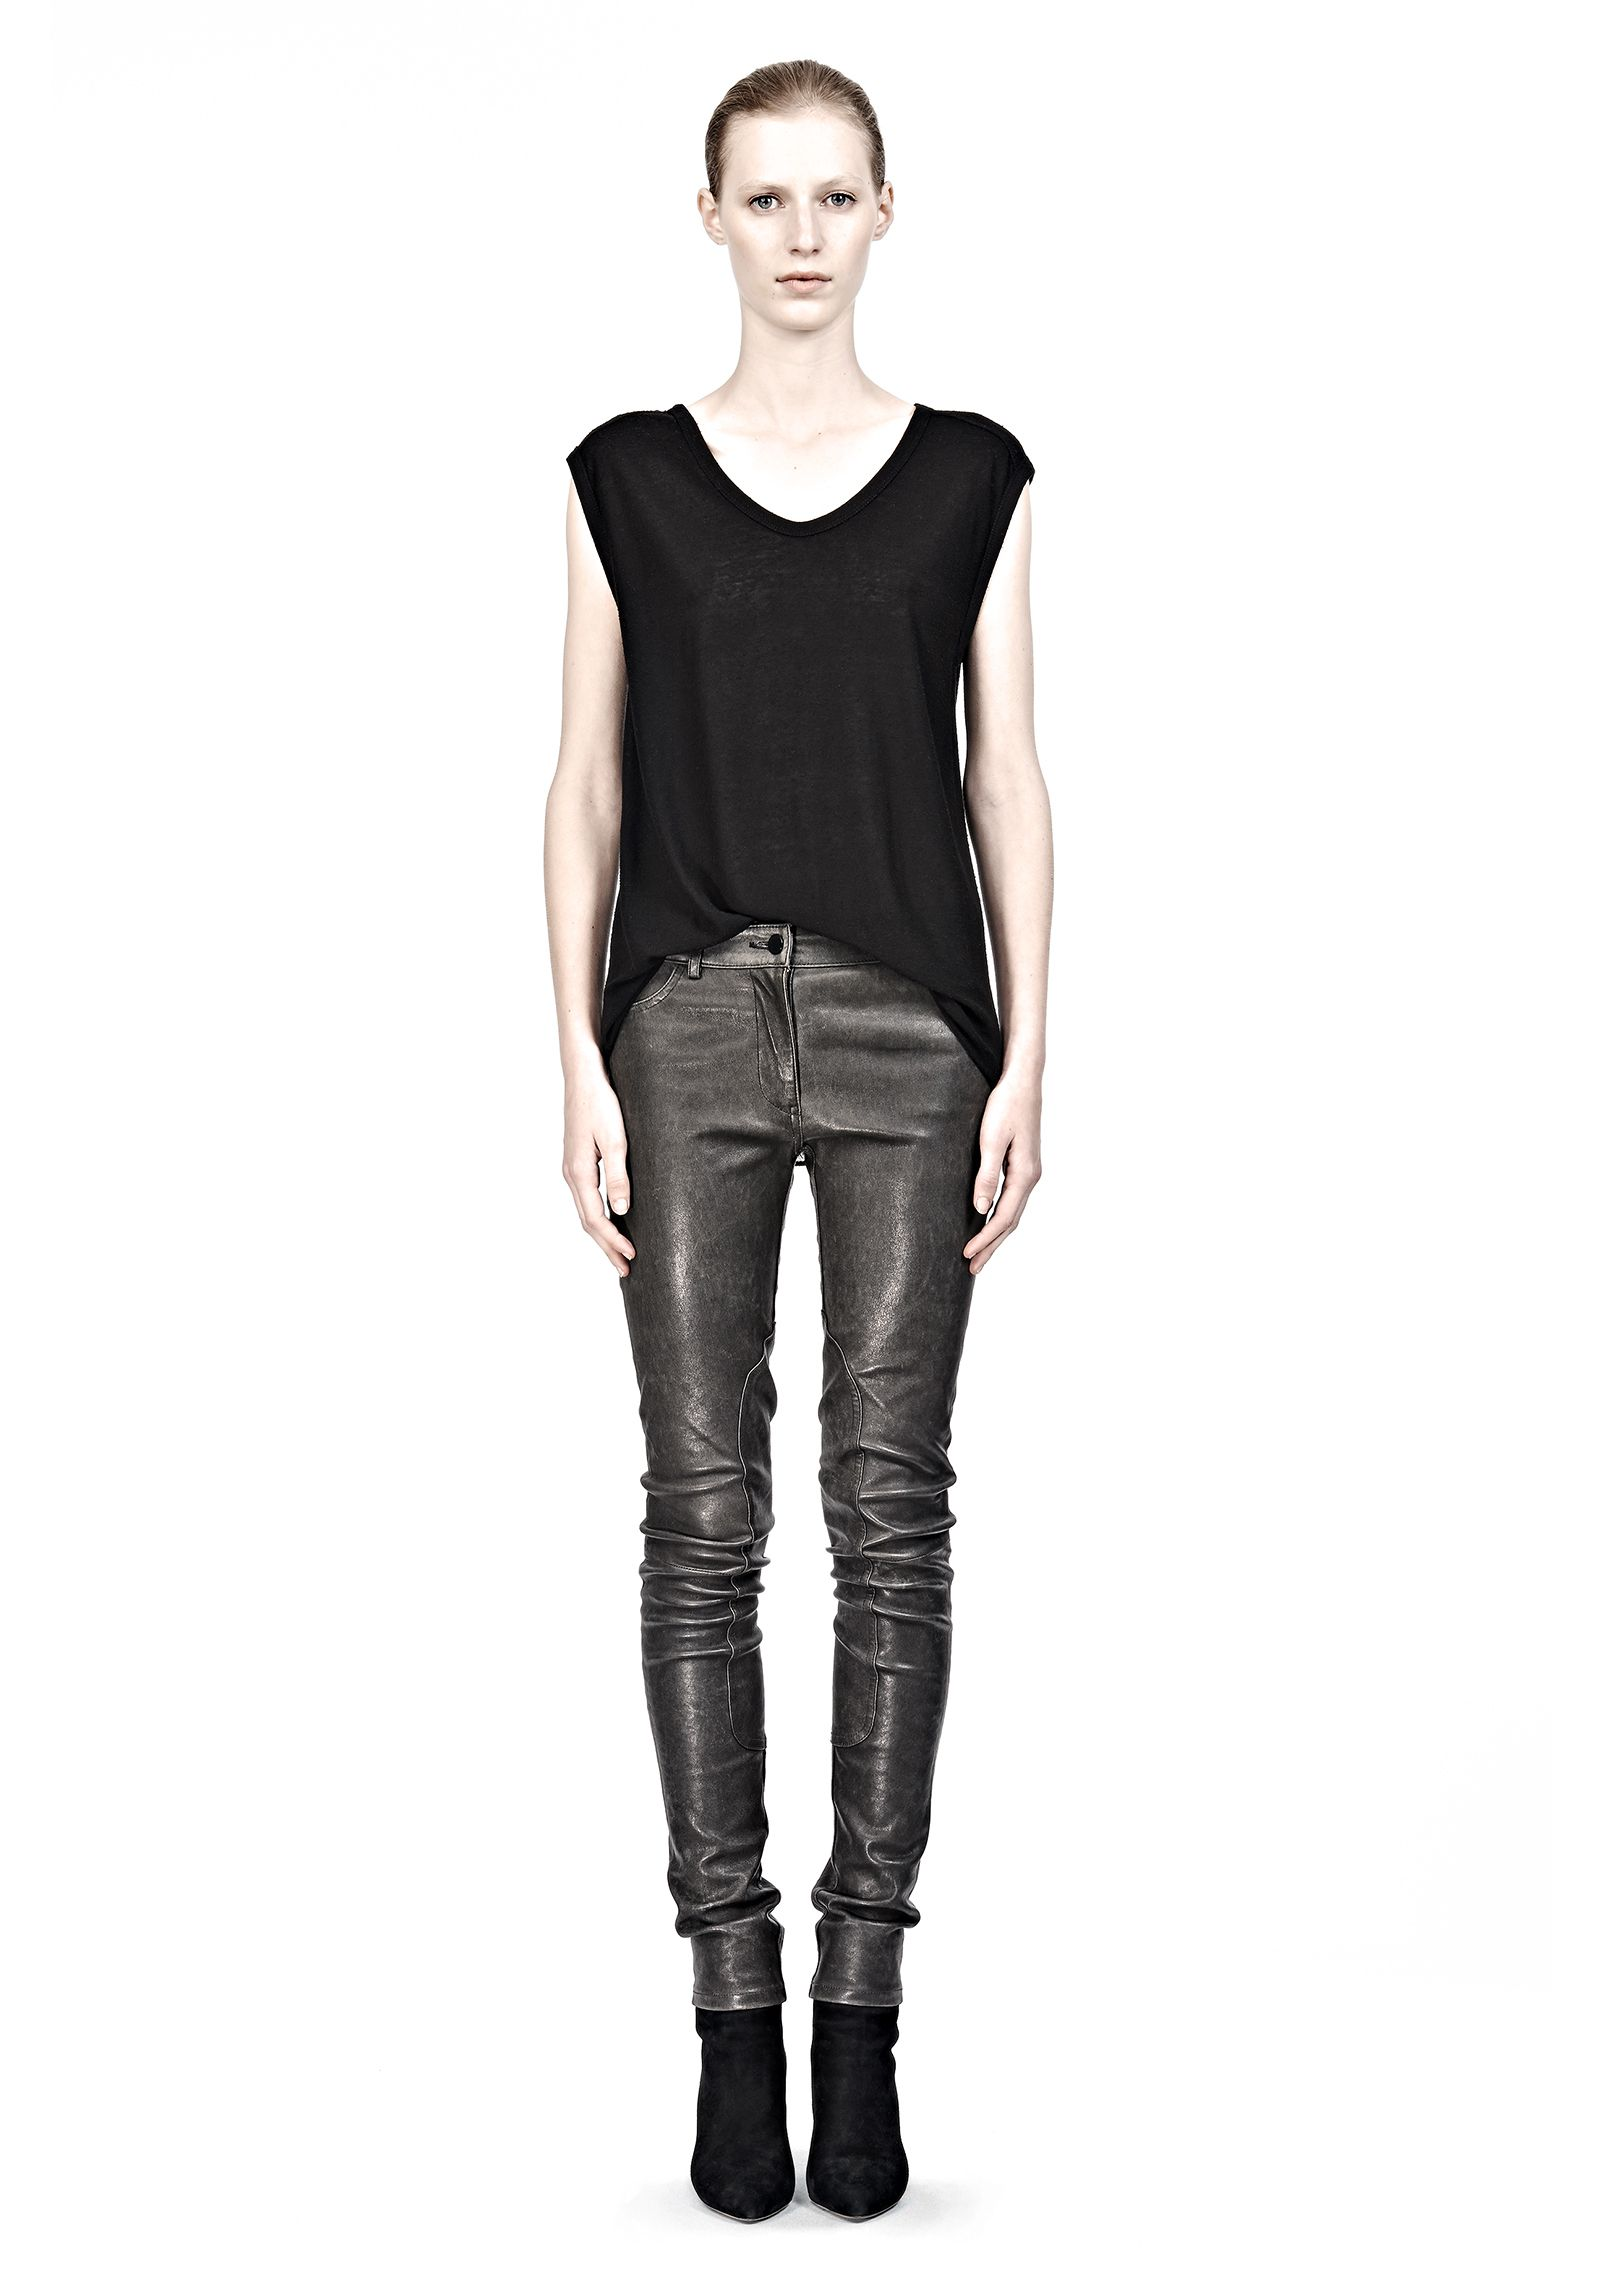 Tee Women - Tops Women on Alexander Wang Online Store